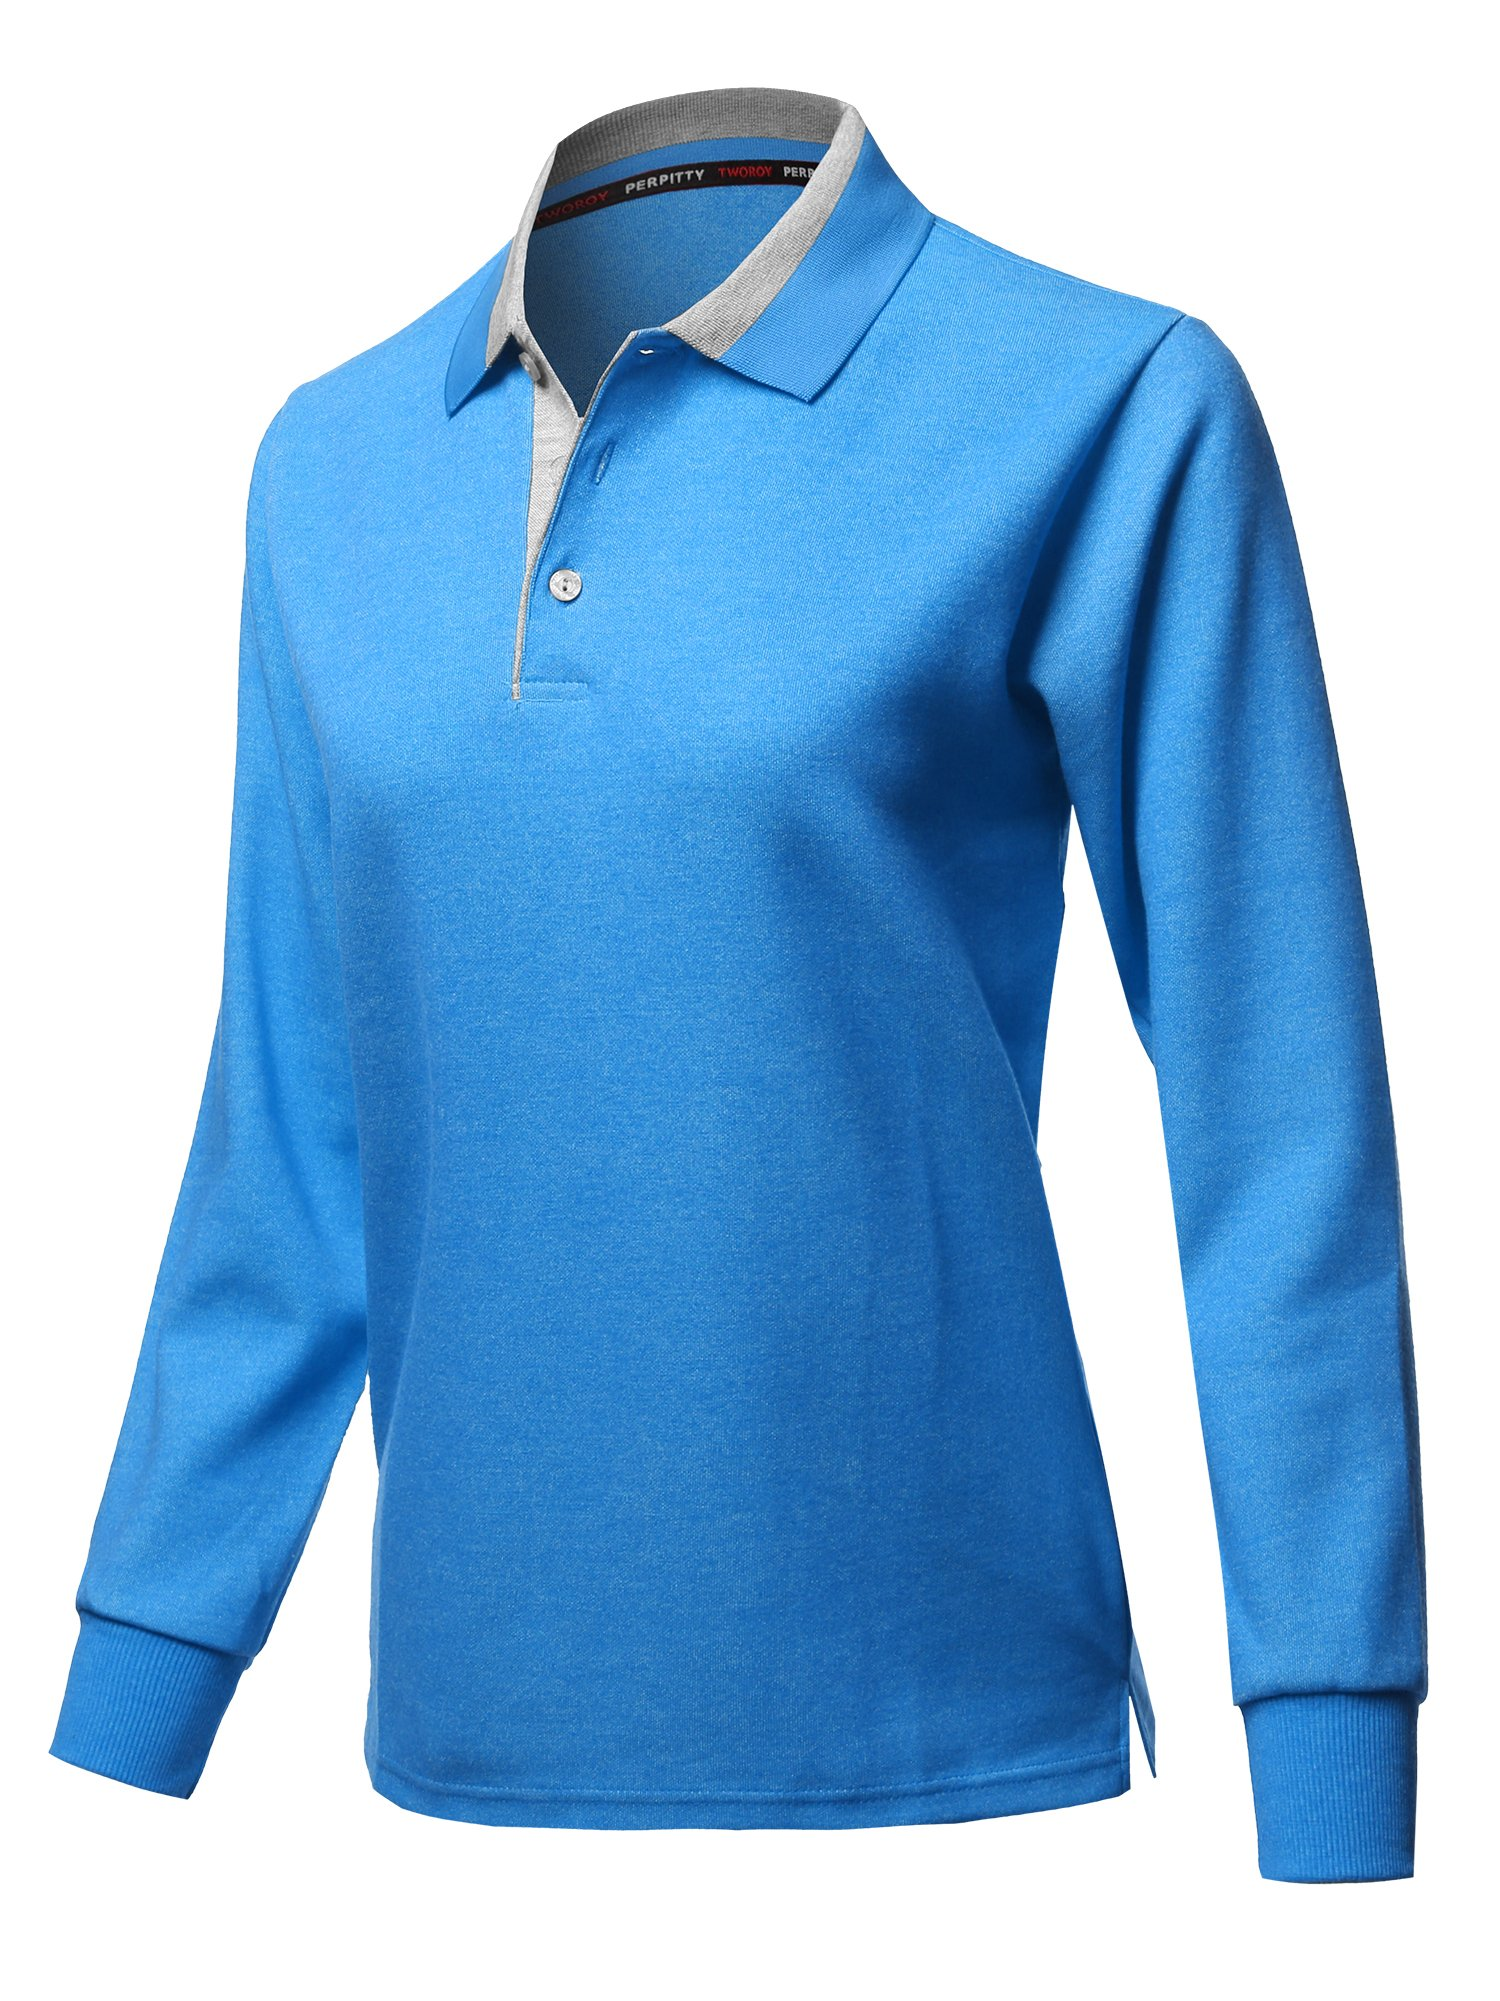 Xpril Casual 100% Cotton Long Sleeves 2-Tone Collar Polo Top Aqua Size L